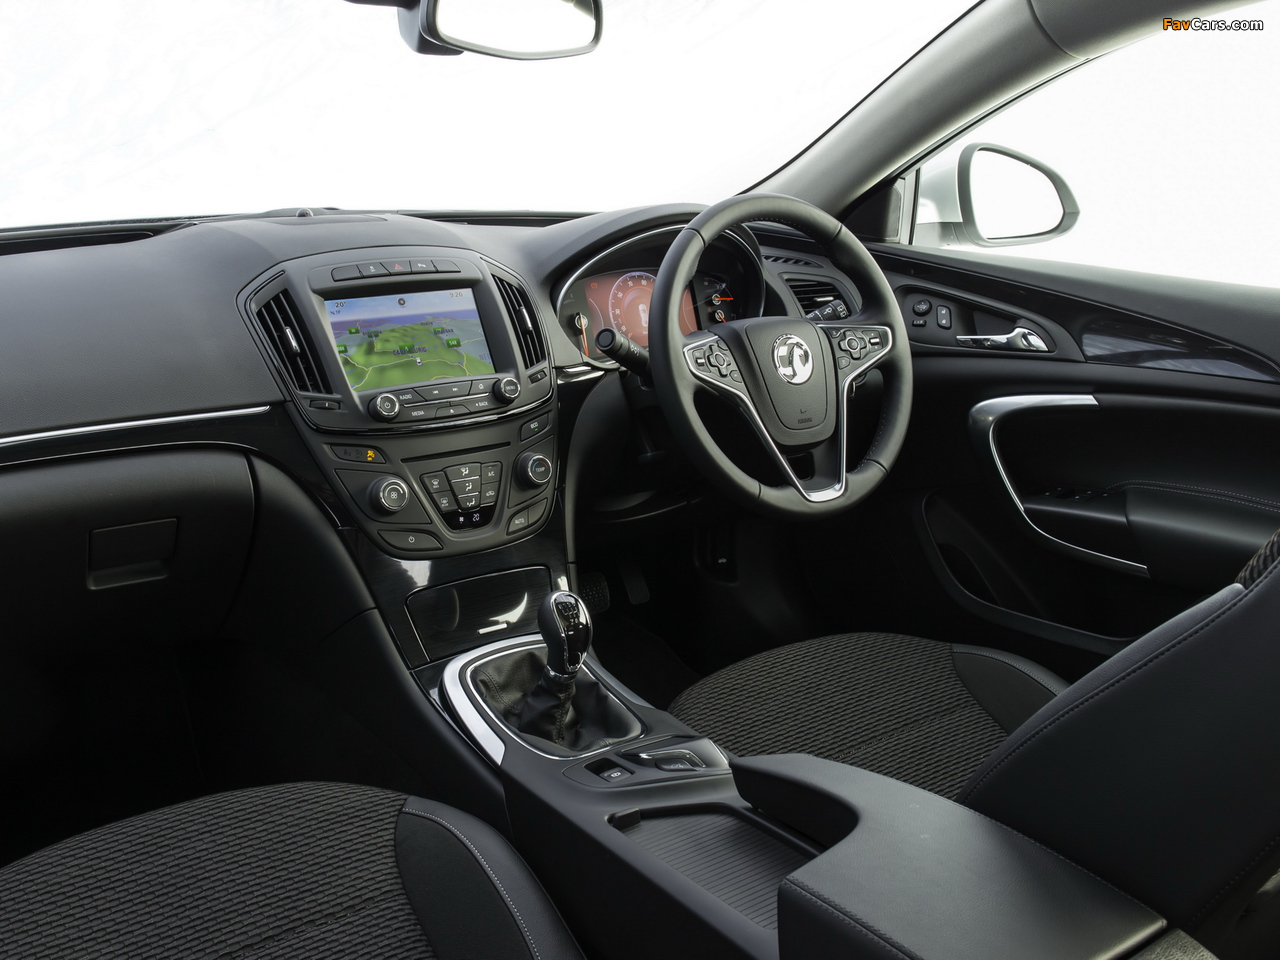 Vauxhall Insignia Country Tourer 2013 images (1280 x 960)